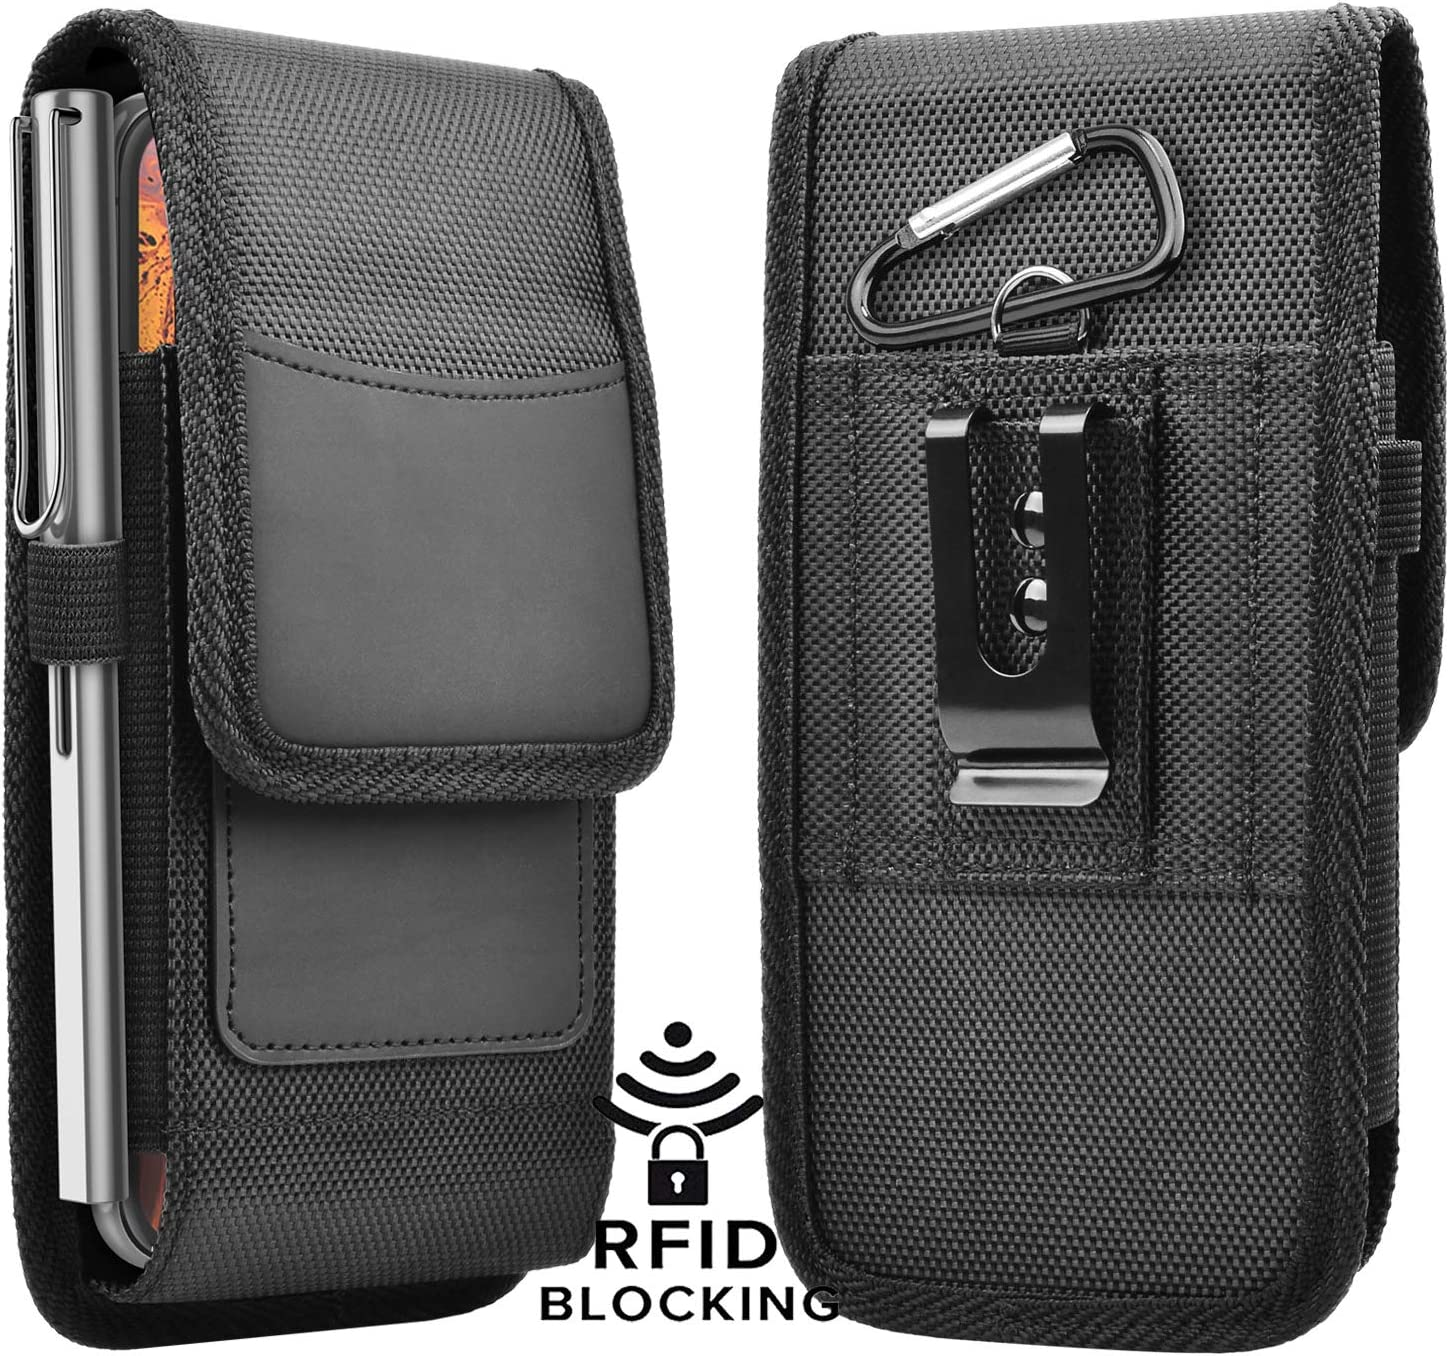 Njjex Phone Holster for Galaxy S20 S10 Plus S10e S9 S8 Note 10+ 9 8 A10e A20 A30 A50 LG Stylo 5 4 3 Aristo 4 3 2 Metal Belt Clip Pouch RFID Wallet Card Slots Holder (Fits Otterbox Defender Case on)